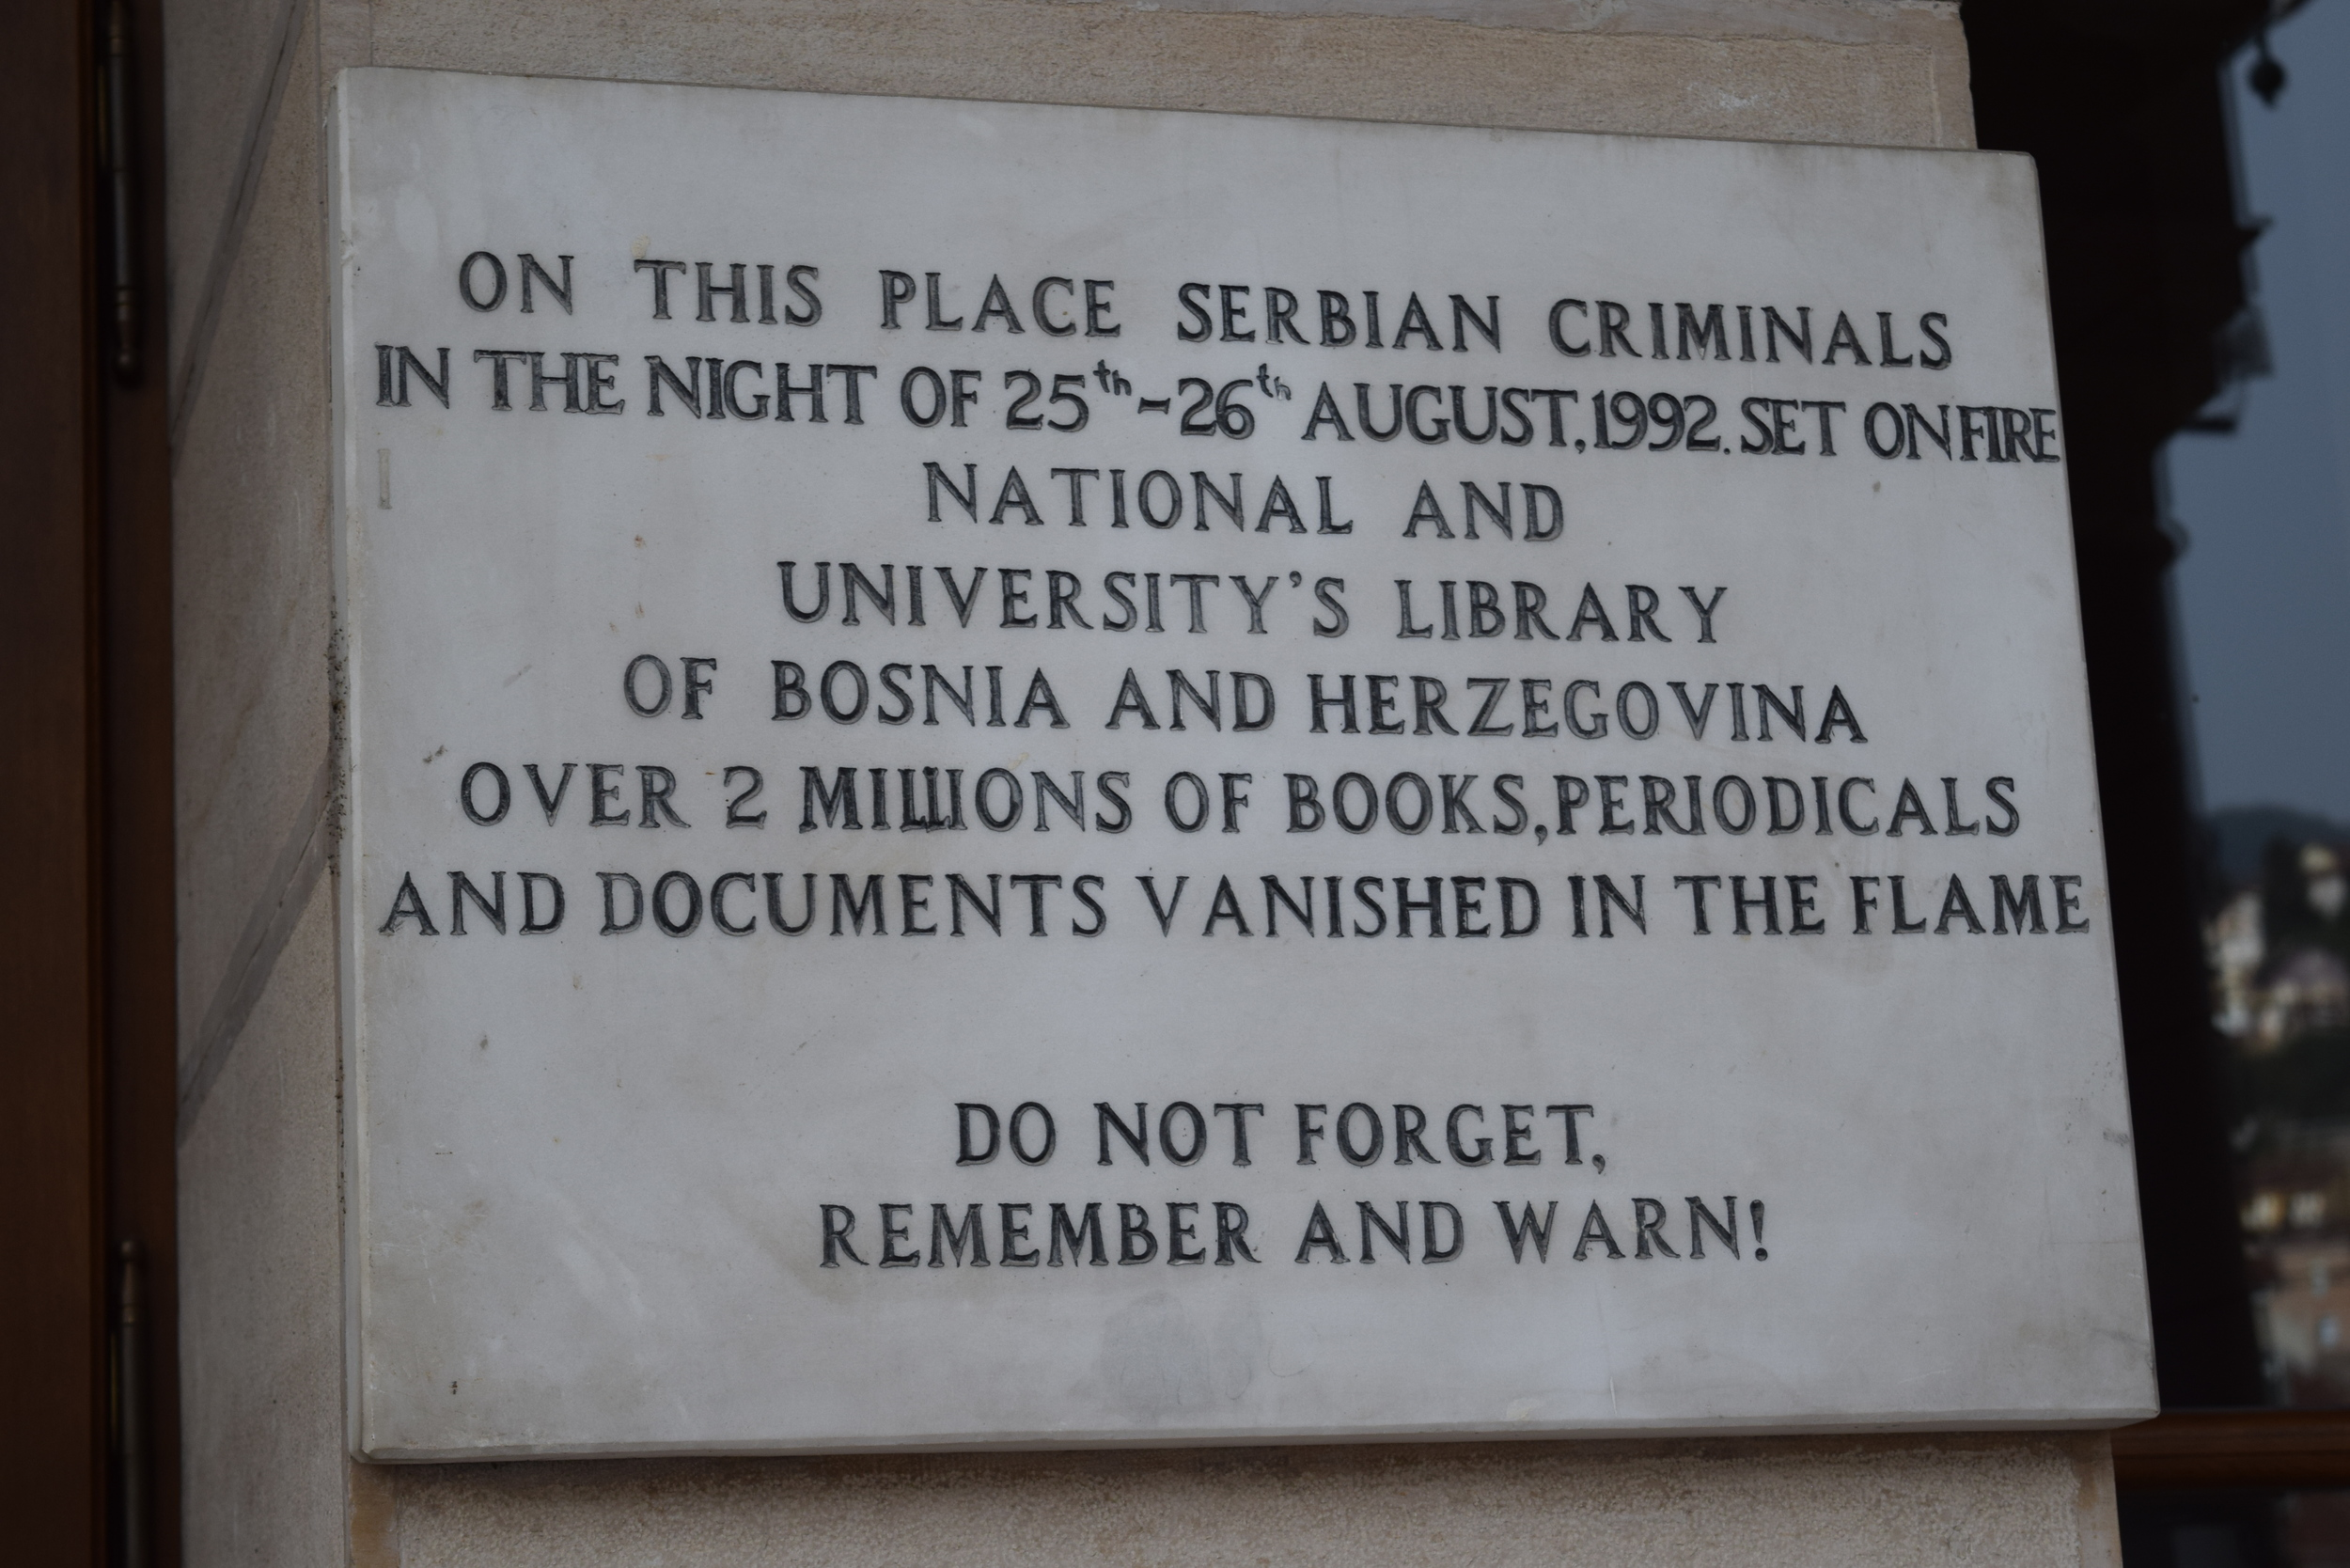 Plaque recognizing destruction of the library